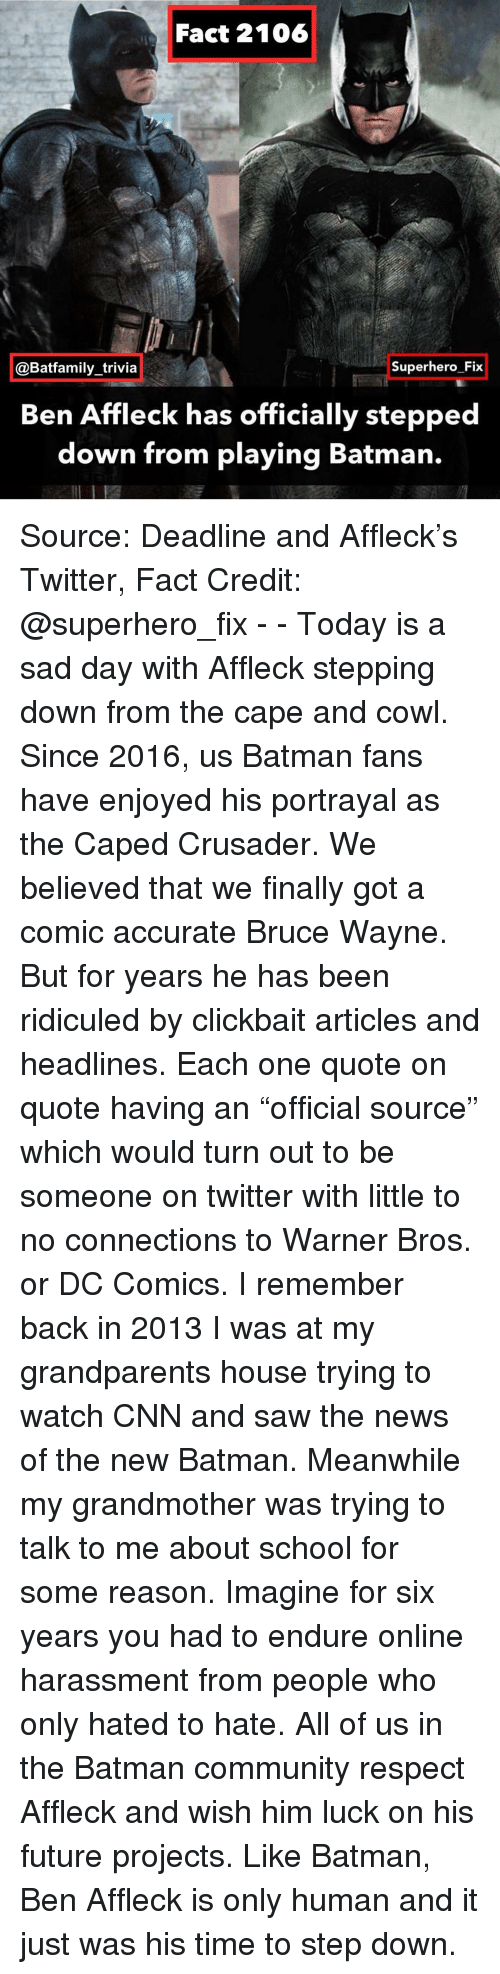 """Batman, cnn.com, and Community: Fact 2106  @Batfamily_trivia  Superhero Fix  Ben Affleck has officially stepped  down from playing Batman. Source: Deadline and Affleck's Twitter, Fact Credit: @superhero_fix - - Today is a sad day with Affleck stepping down from the cape and cowl. Since 2016, us Batman fans have enjoyed his portrayal as the Caped Crusader. We believed that we finally got a comic accurate Bruce Wayne. But for years he has been ridiculed by clickbait articles and headlines. Each one quote on quote having an """"official source"""" which would turn out to be someone on twitter with little to no connections to Warner Bros. or DC Comics. I remember back in 2013 I was at my grandparents house trying to watch CNN and saw the news of the new Batman. Meanwhile my grandmother was trying to talk to me about school for some reason. Imagine for six years you had to endure online harassment from people who only hated to hate. All of us in the Batman community respect Affleck and wish him luck on his future projects. Like Batman, Ben Affleck is only human and it just was his time to step down."""